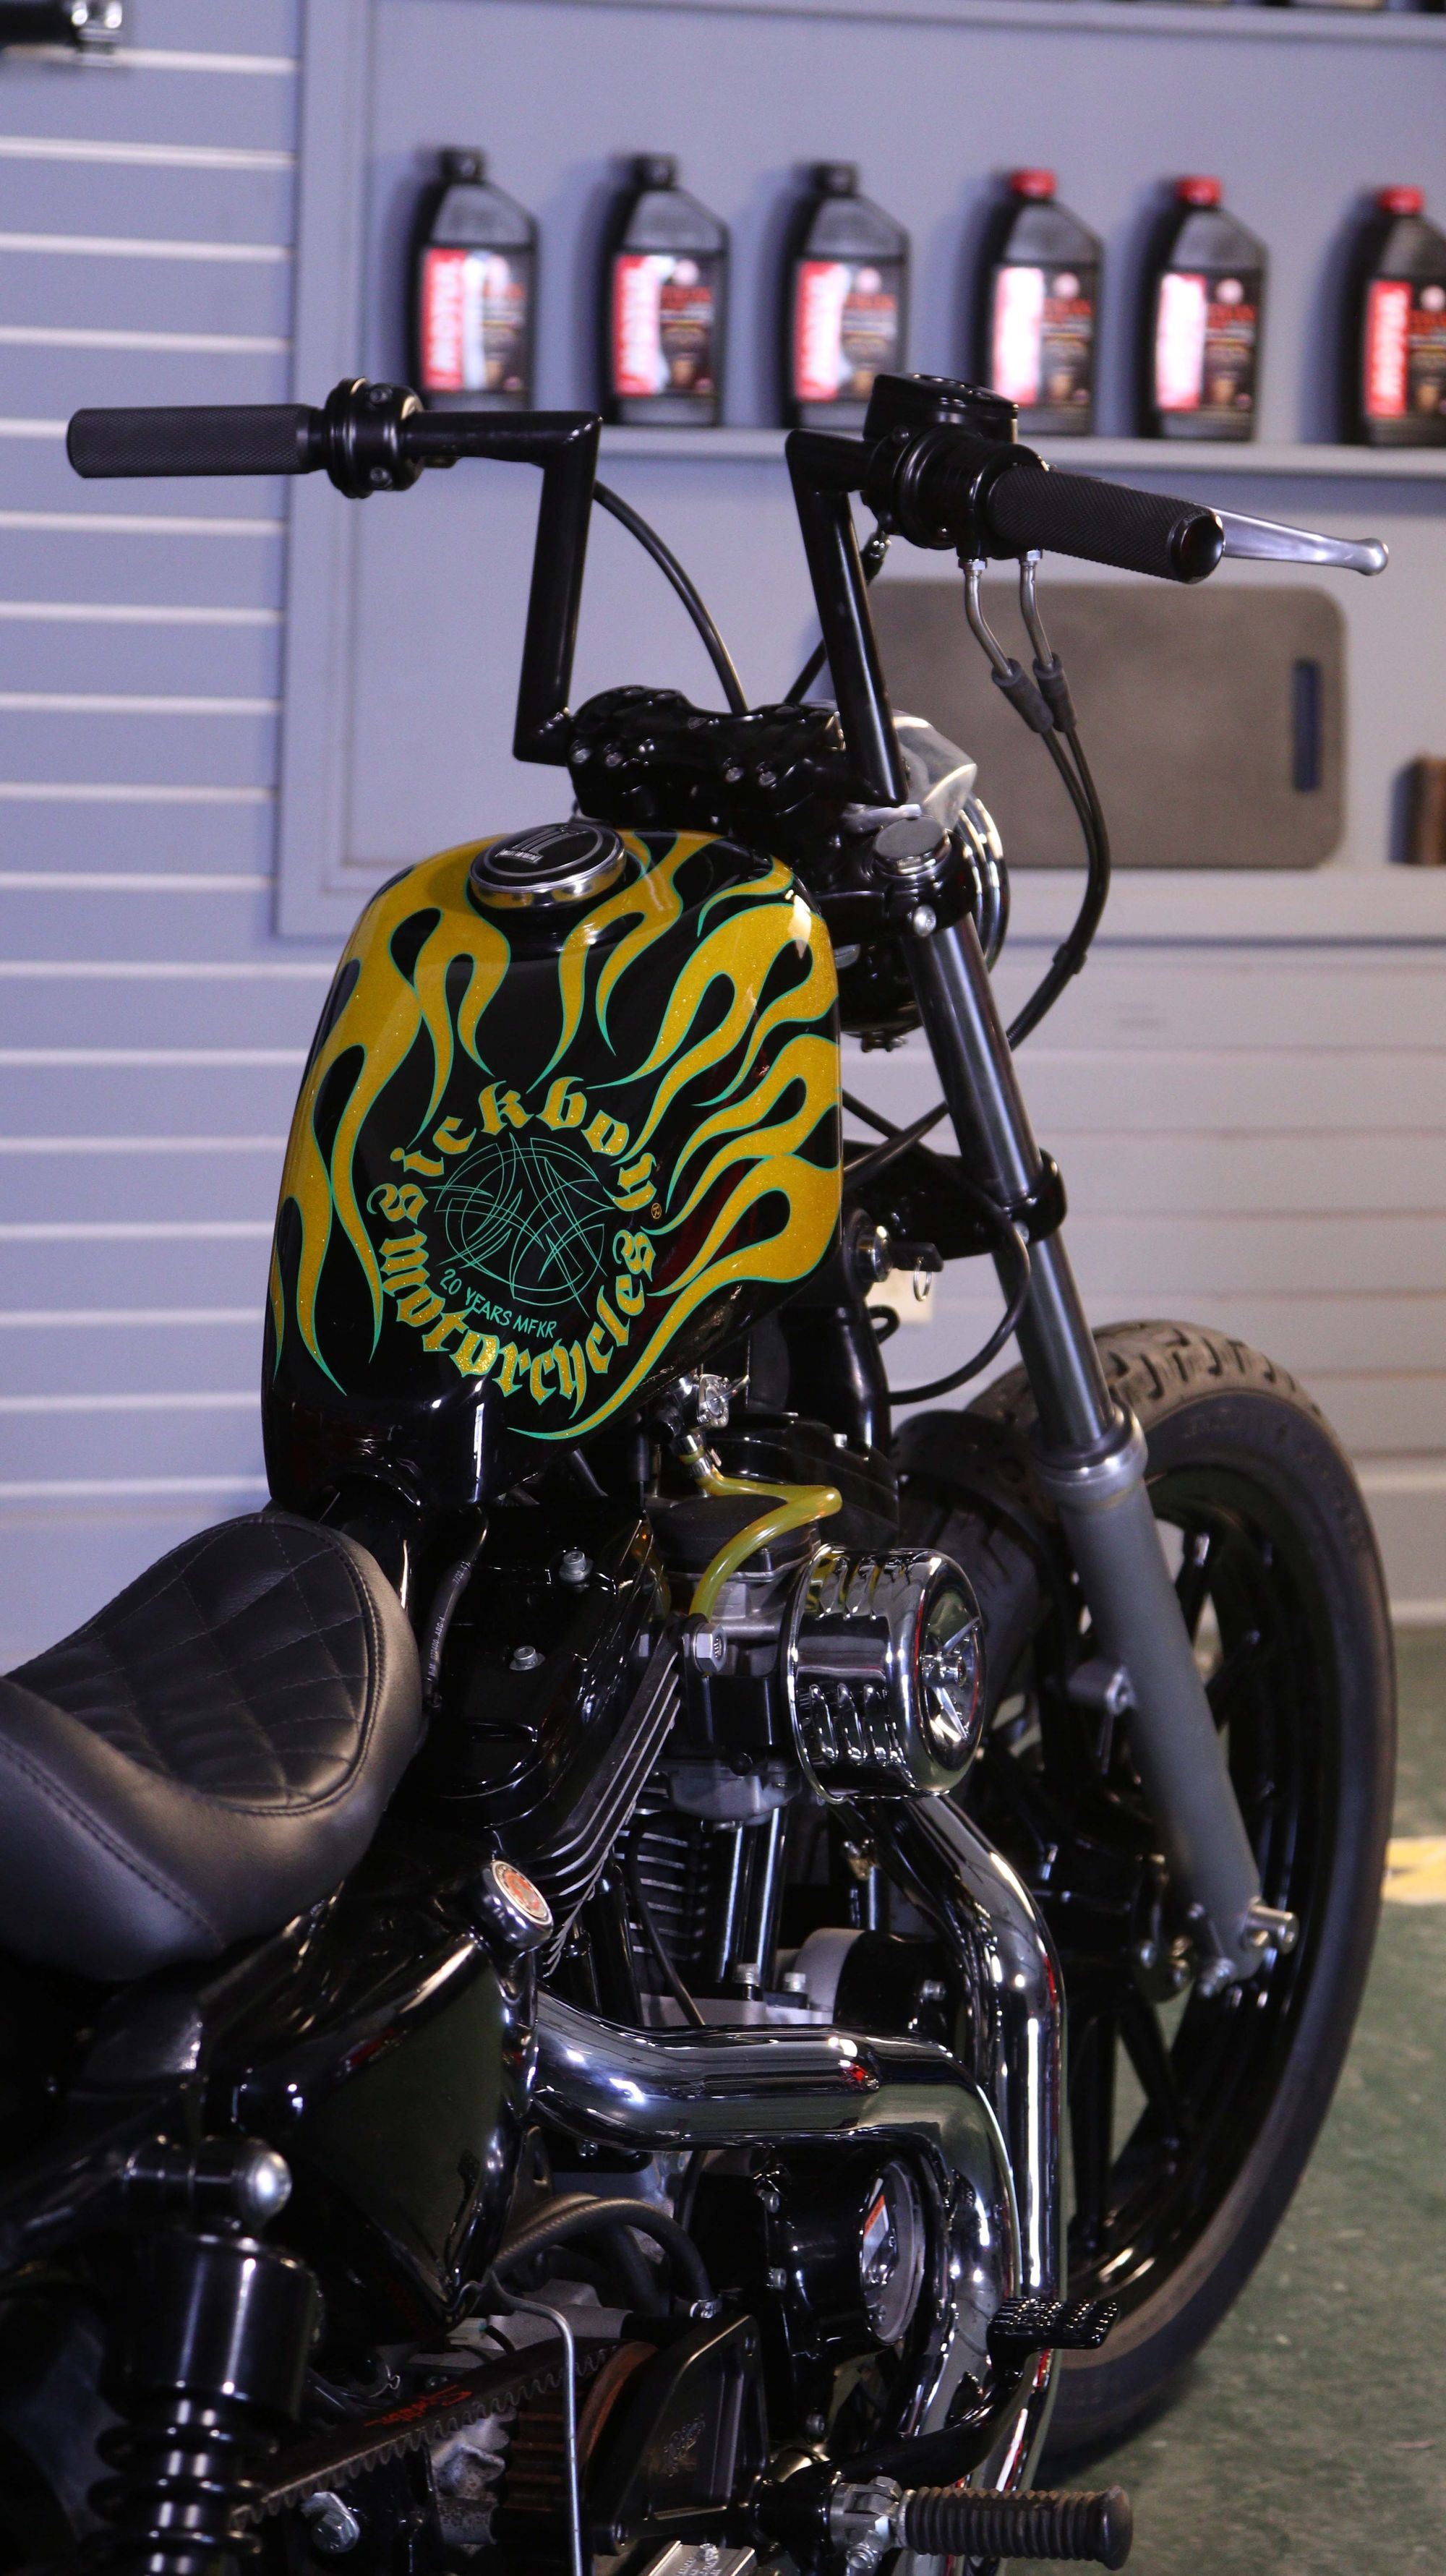 Sick Boy Sportster Build (That Could be Yours!)